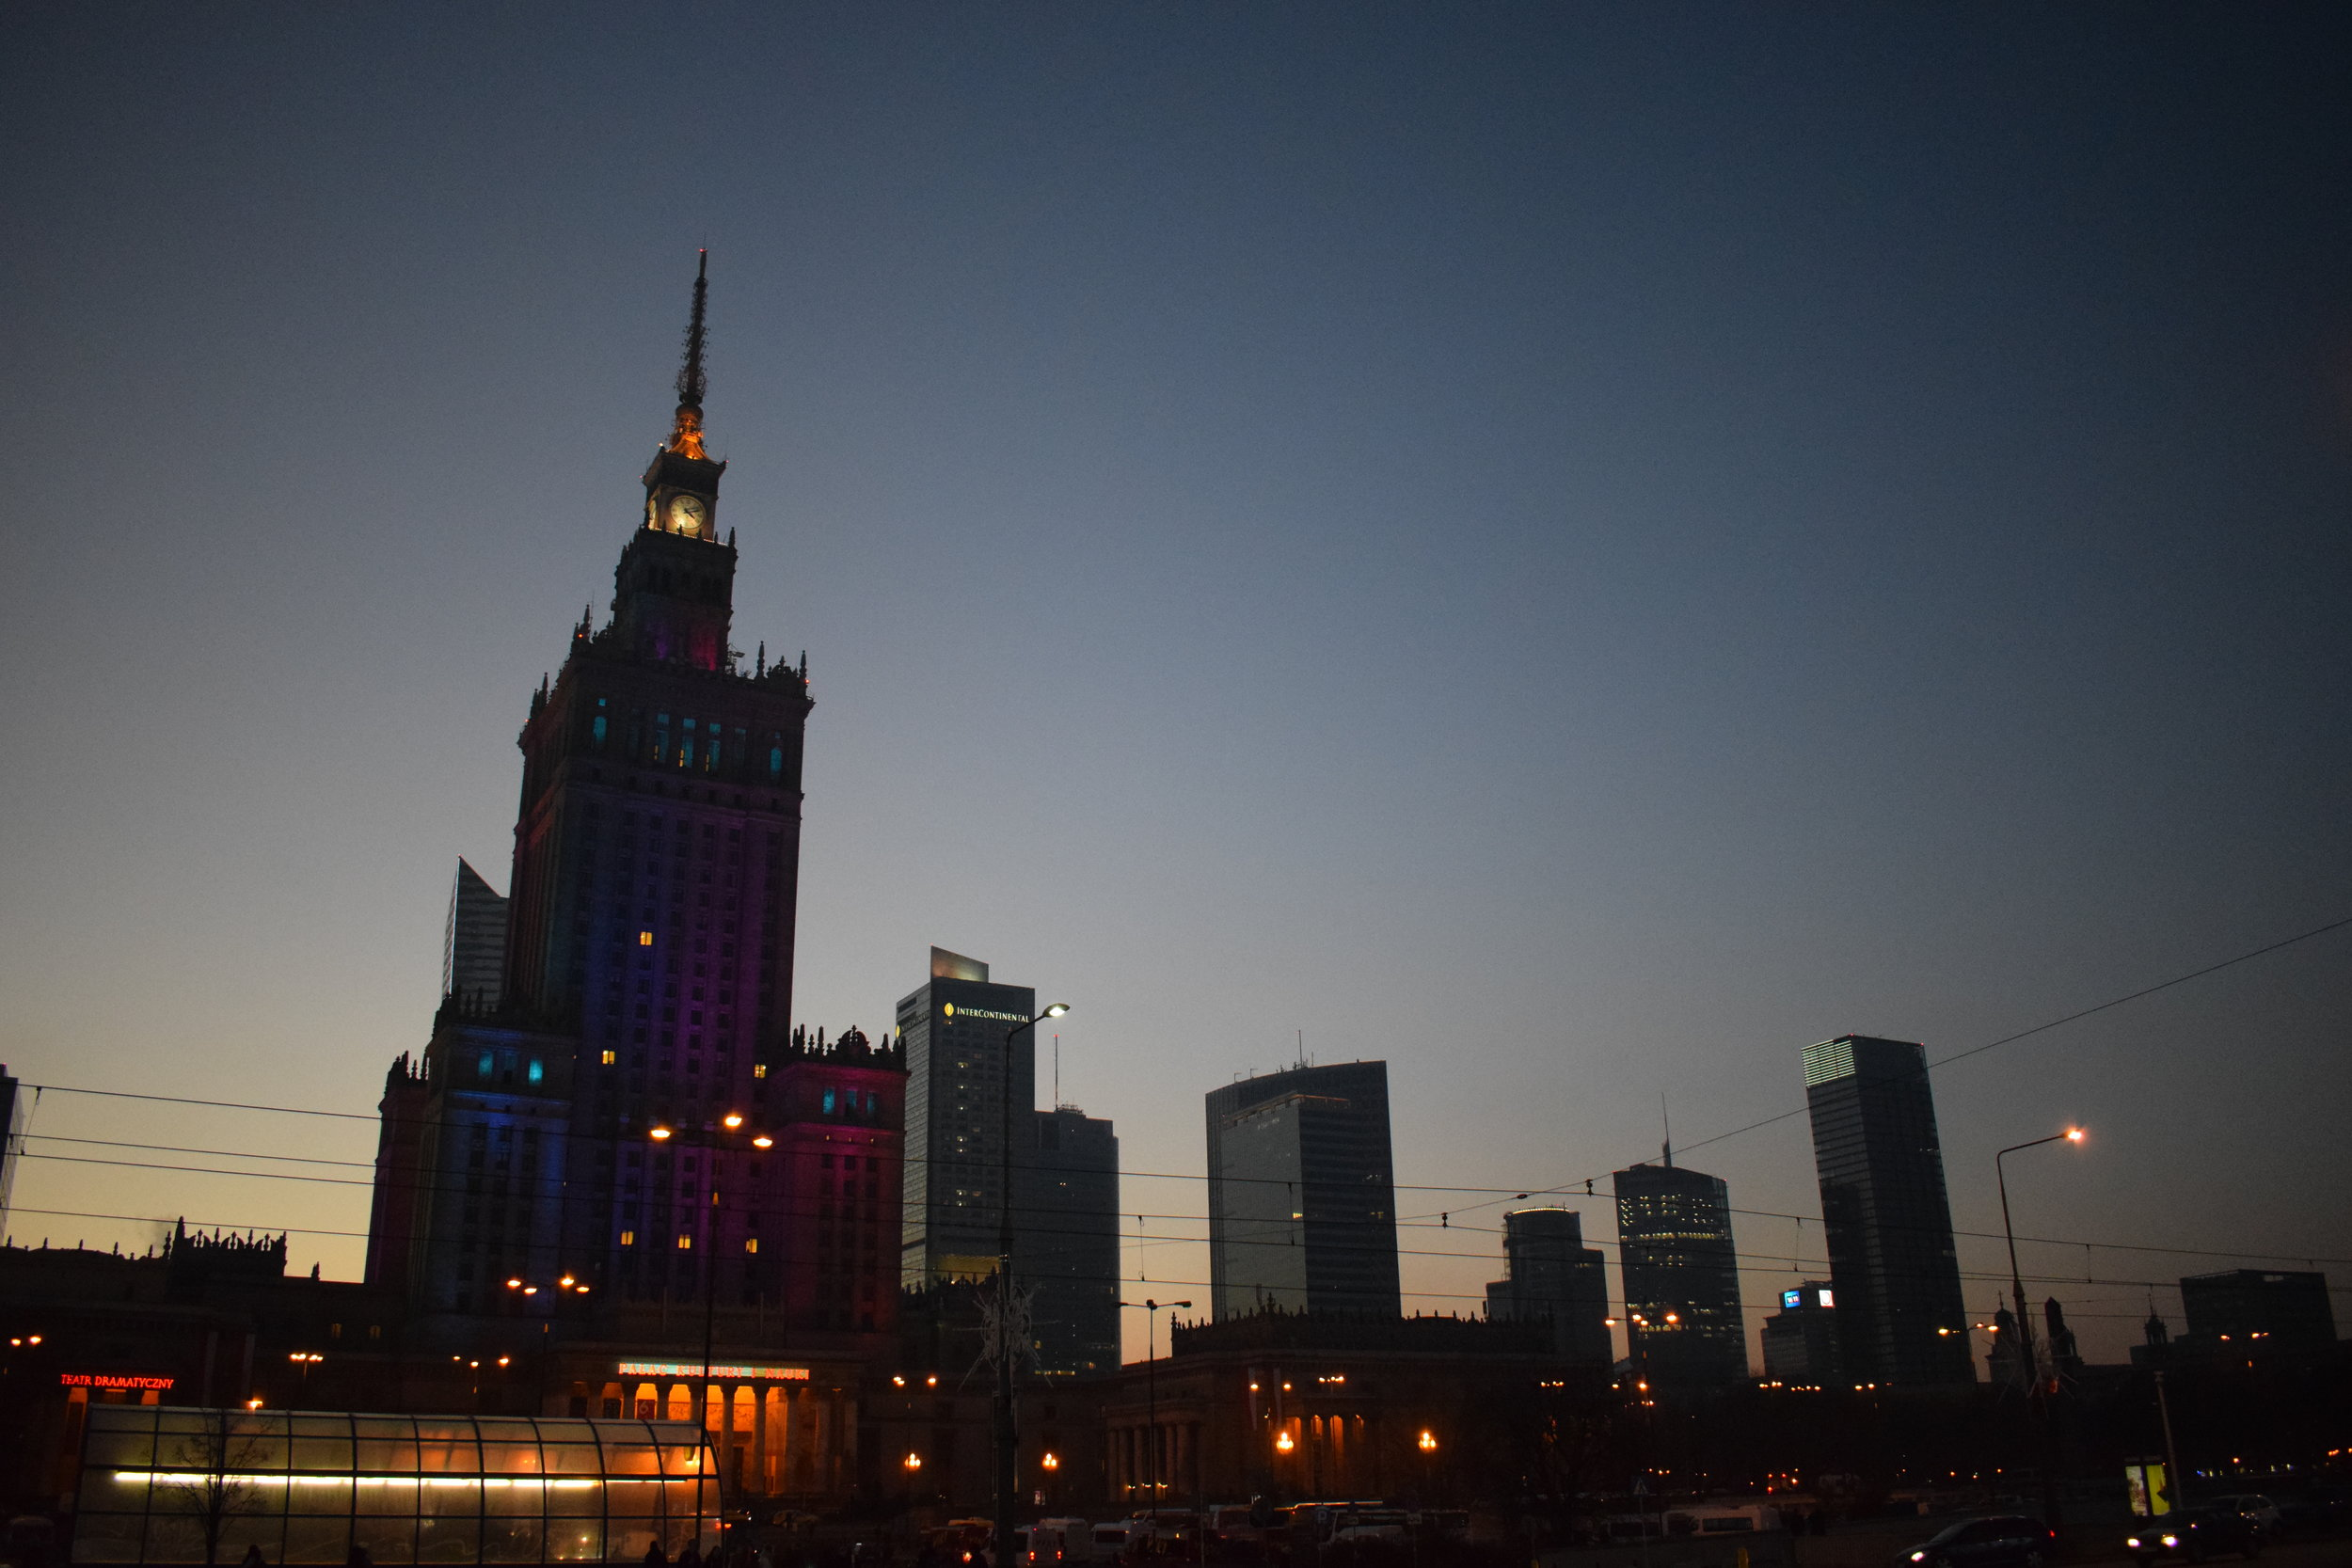 Palace-Culture-Science-Warsaw-Poland-Illuminated